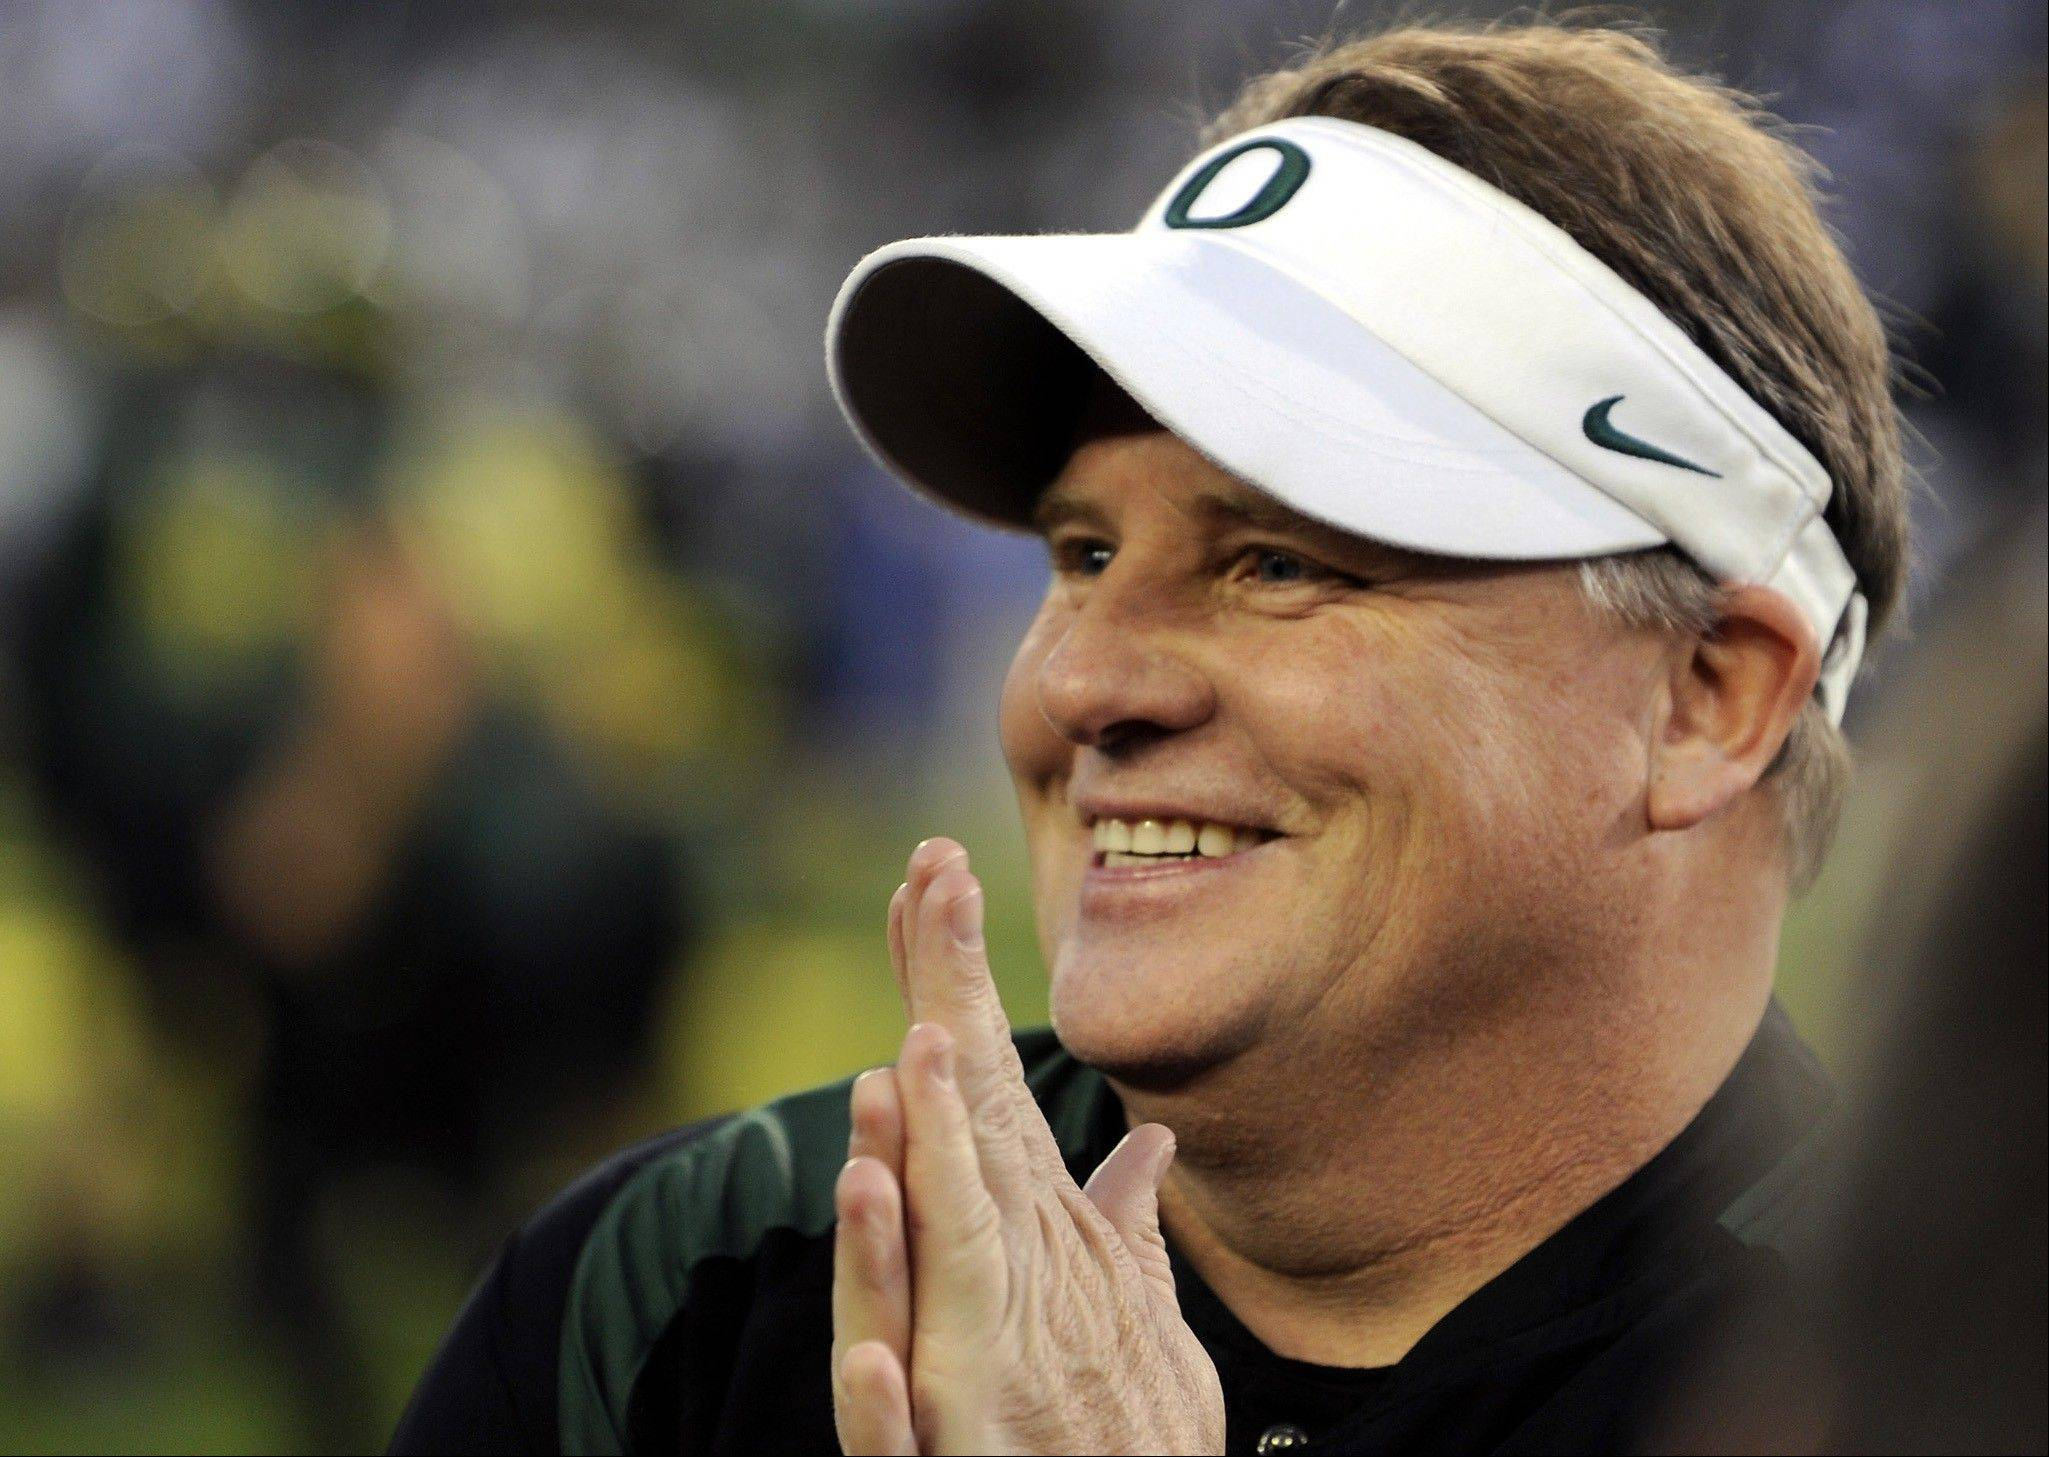 FILE - In this Dec. 2, 2011 file photo, Oregon's head coach Chip Kelly smiles before the Pac 12 championship football game against UCLA in Eugene, Ore. The Philadelphia Eagles have hired Kelly after he originally chose to stay at Oregon. Kelly becomes the 21st coach in team history and replaces Andy Reid, who was fired on Dec. 31 after a 4-12 season.